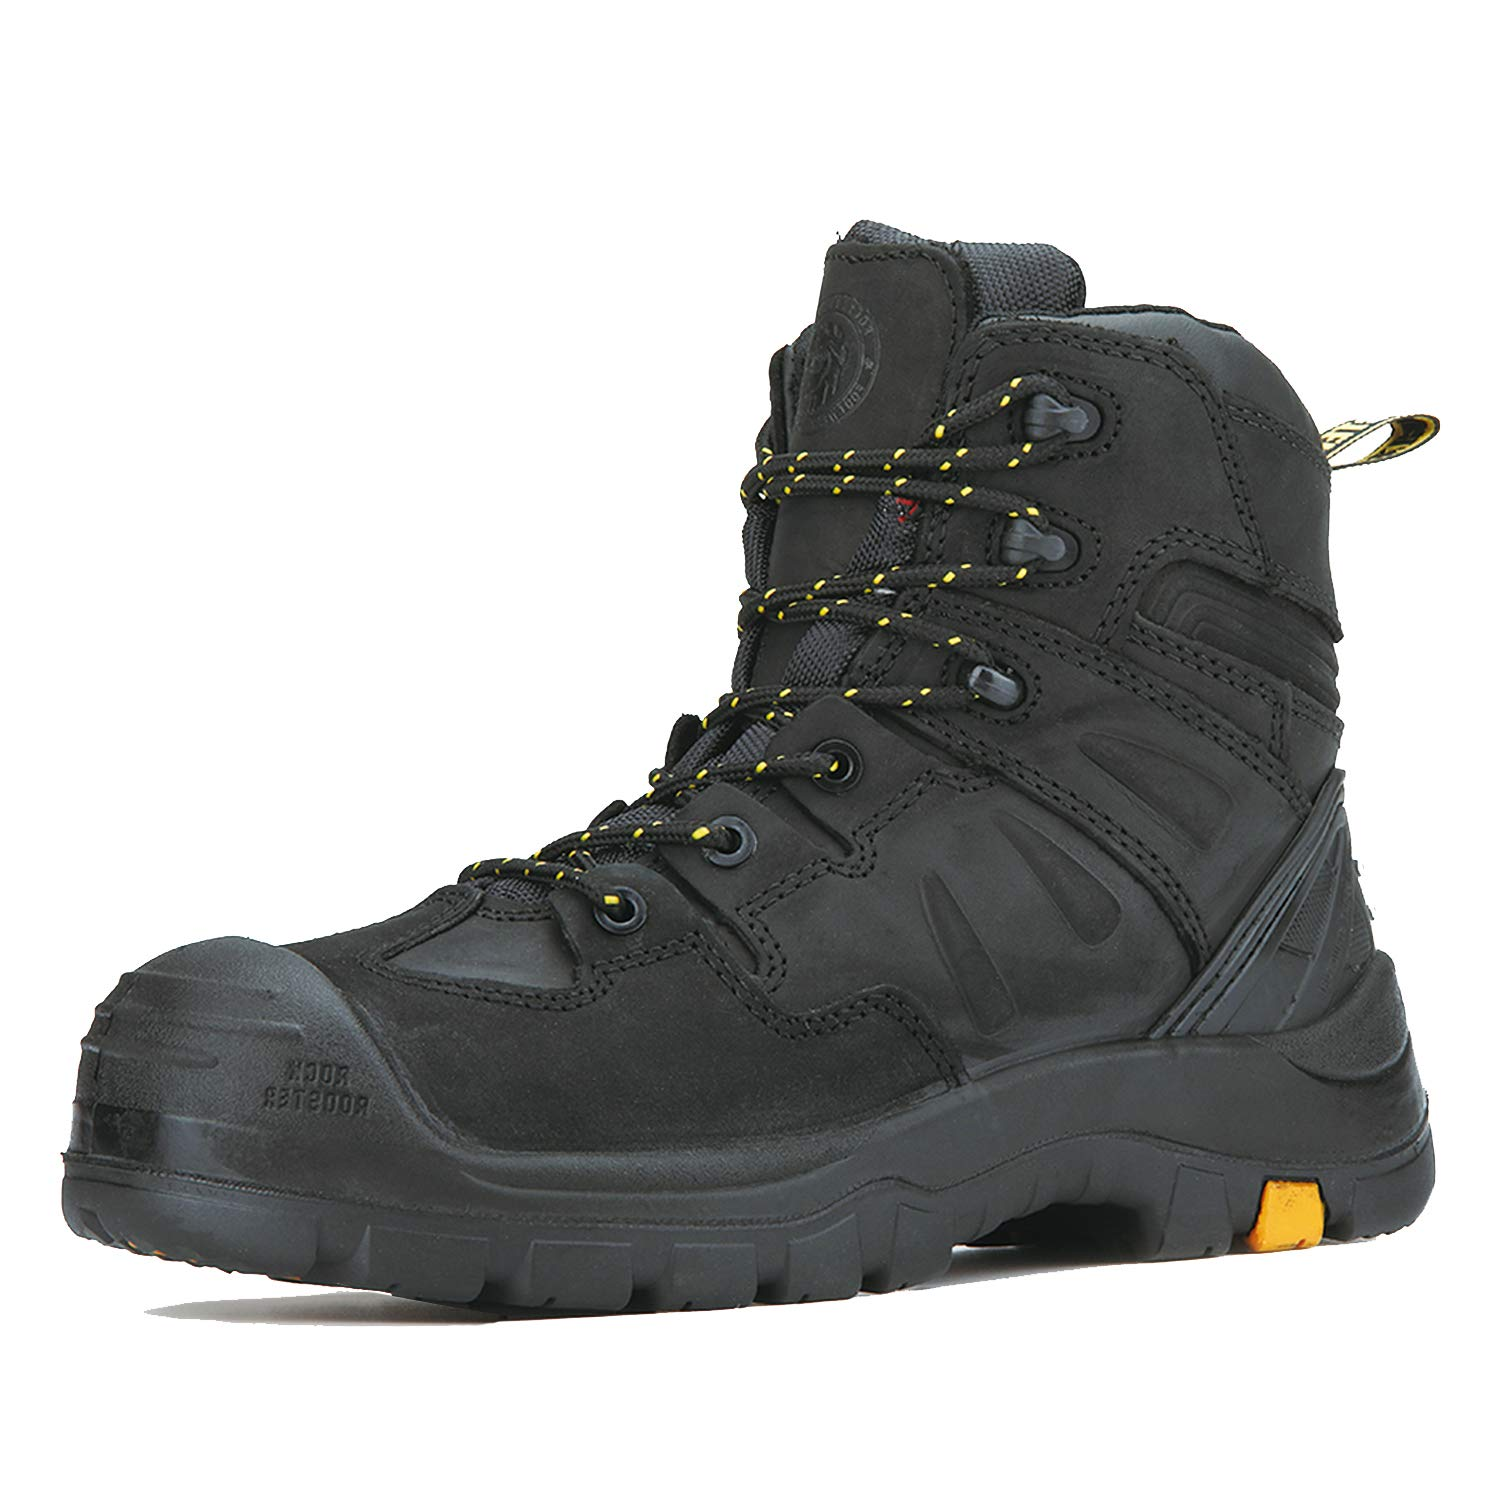 ROCKROOSTER Woodland Work Boots for Men, 6 inch Composite Toe Lace up Leather Boots, Waterproof, Electric Hazard, Non-Slip, AK609, AK639, AK669, AK869